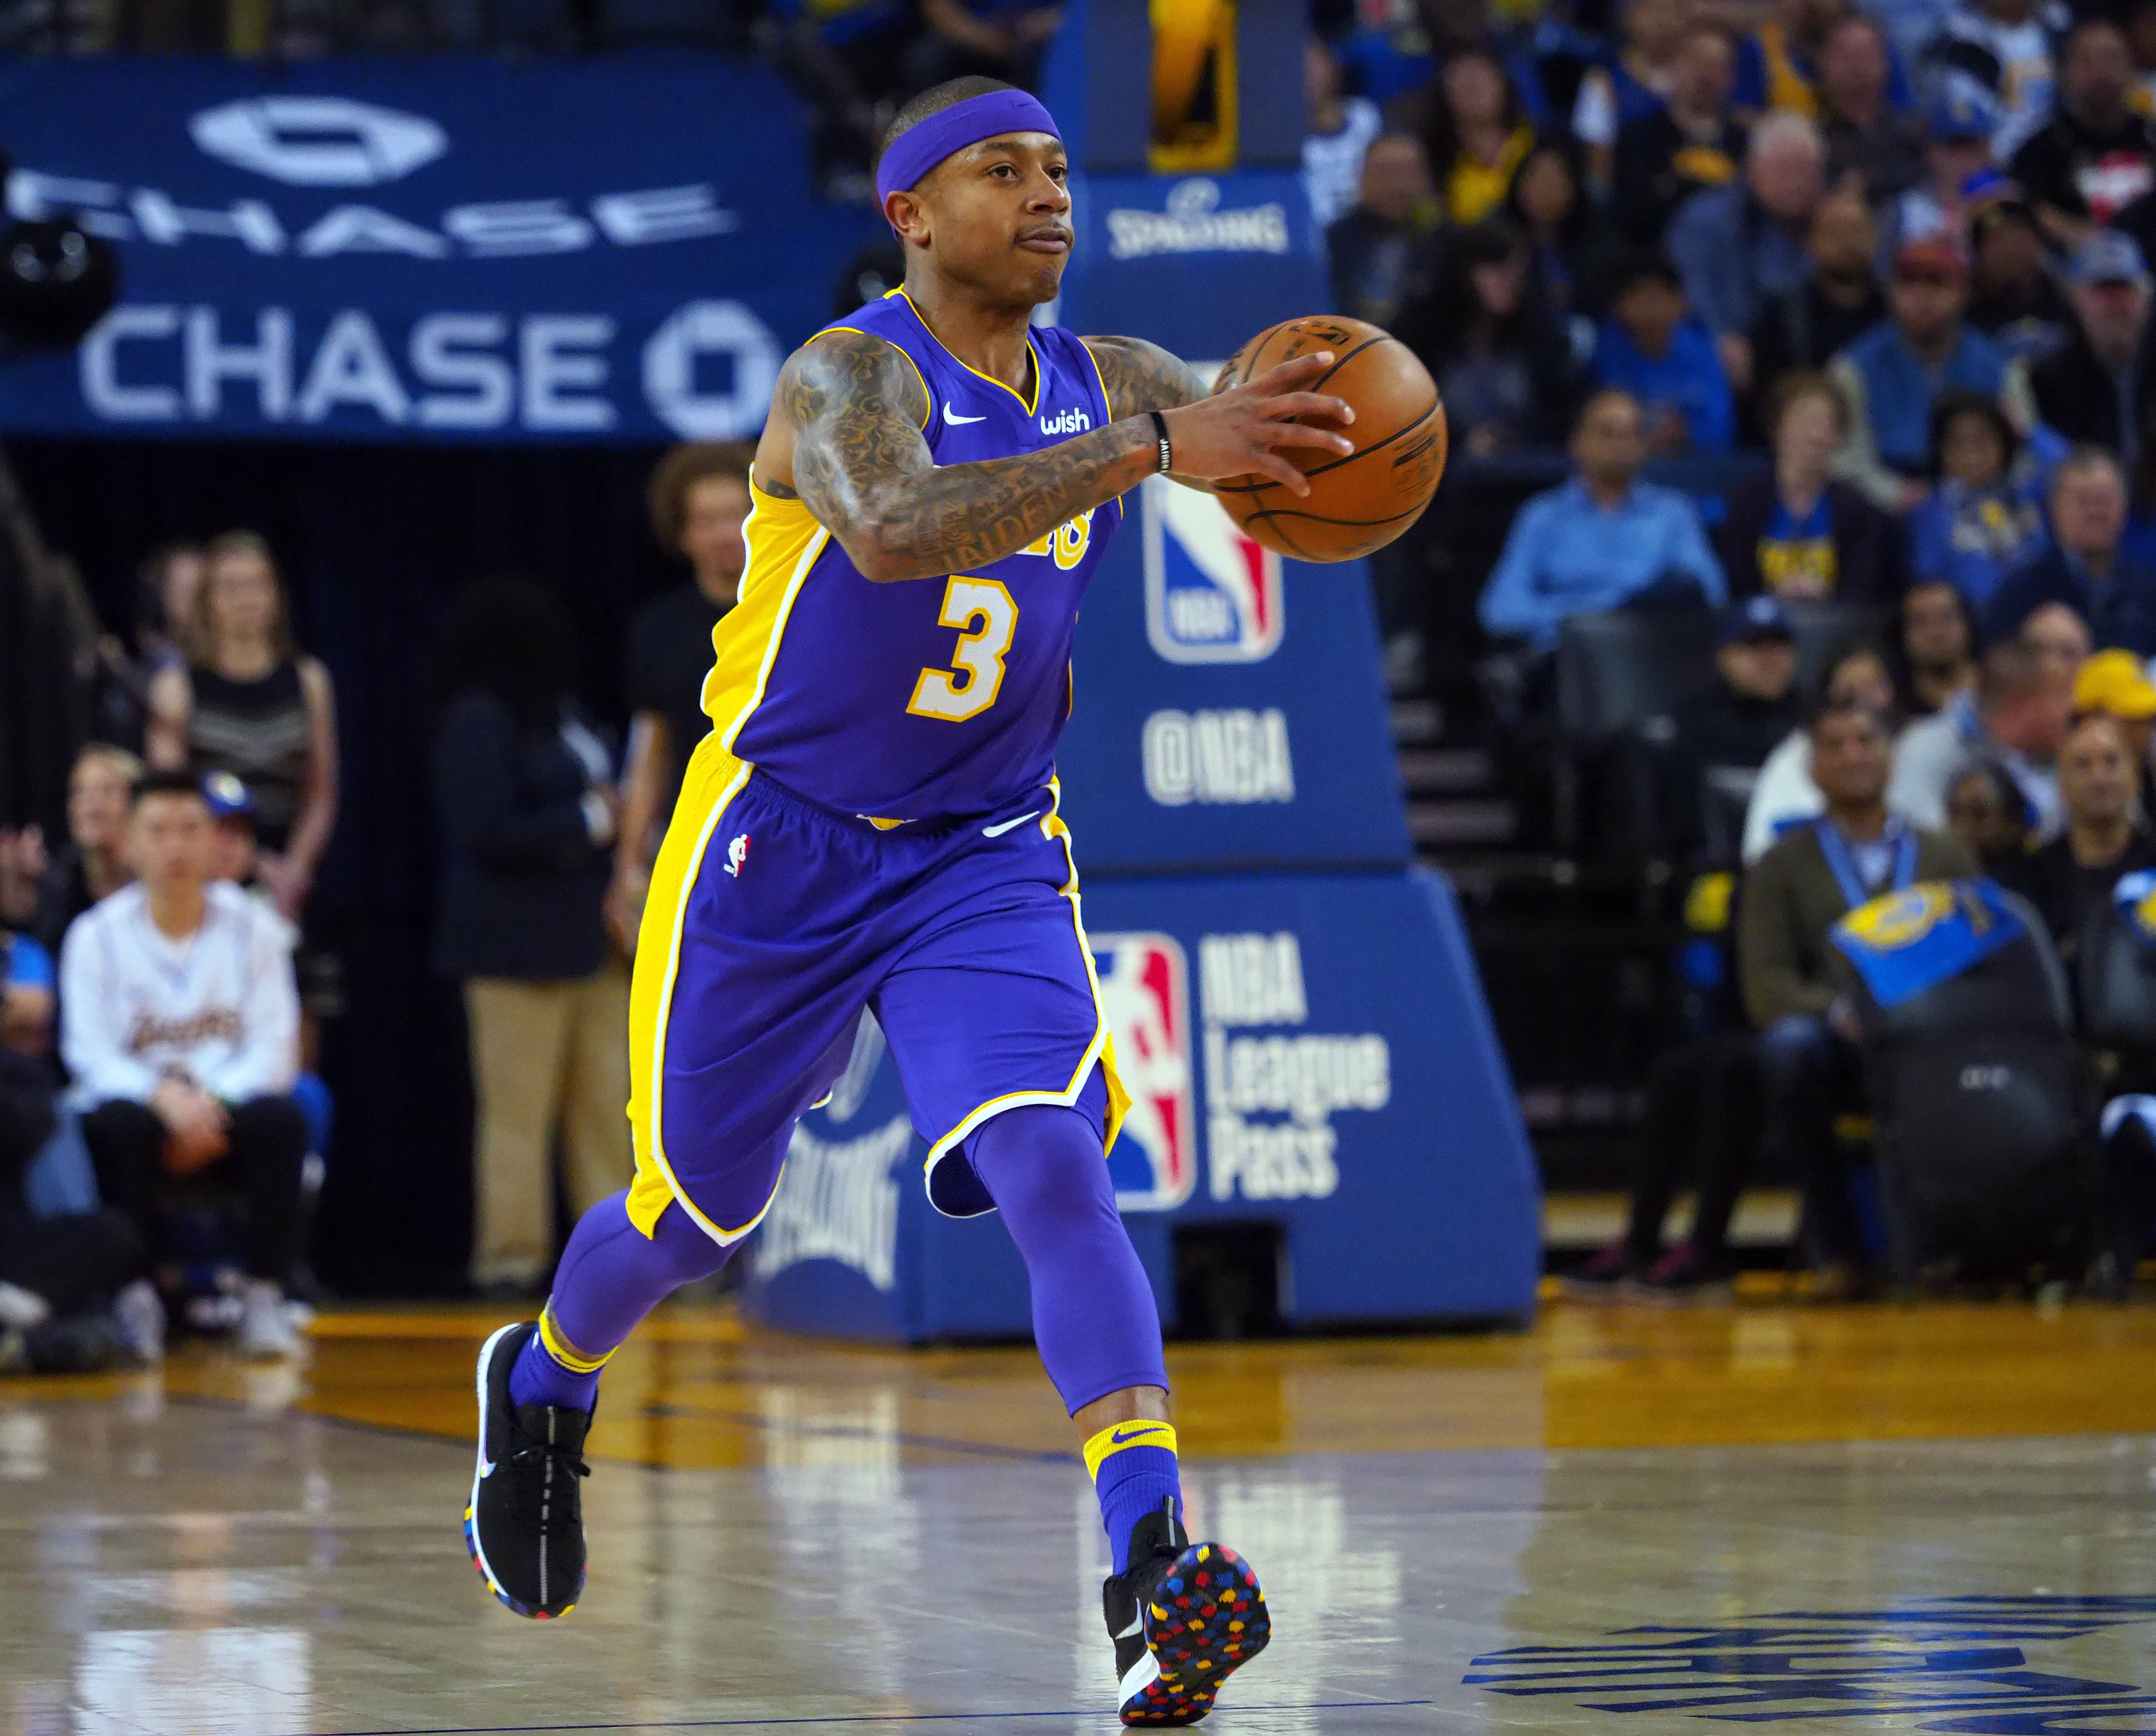 Lakers' Isaiah Thomas Having Hip Surgery, Team Interested In Summer Talks